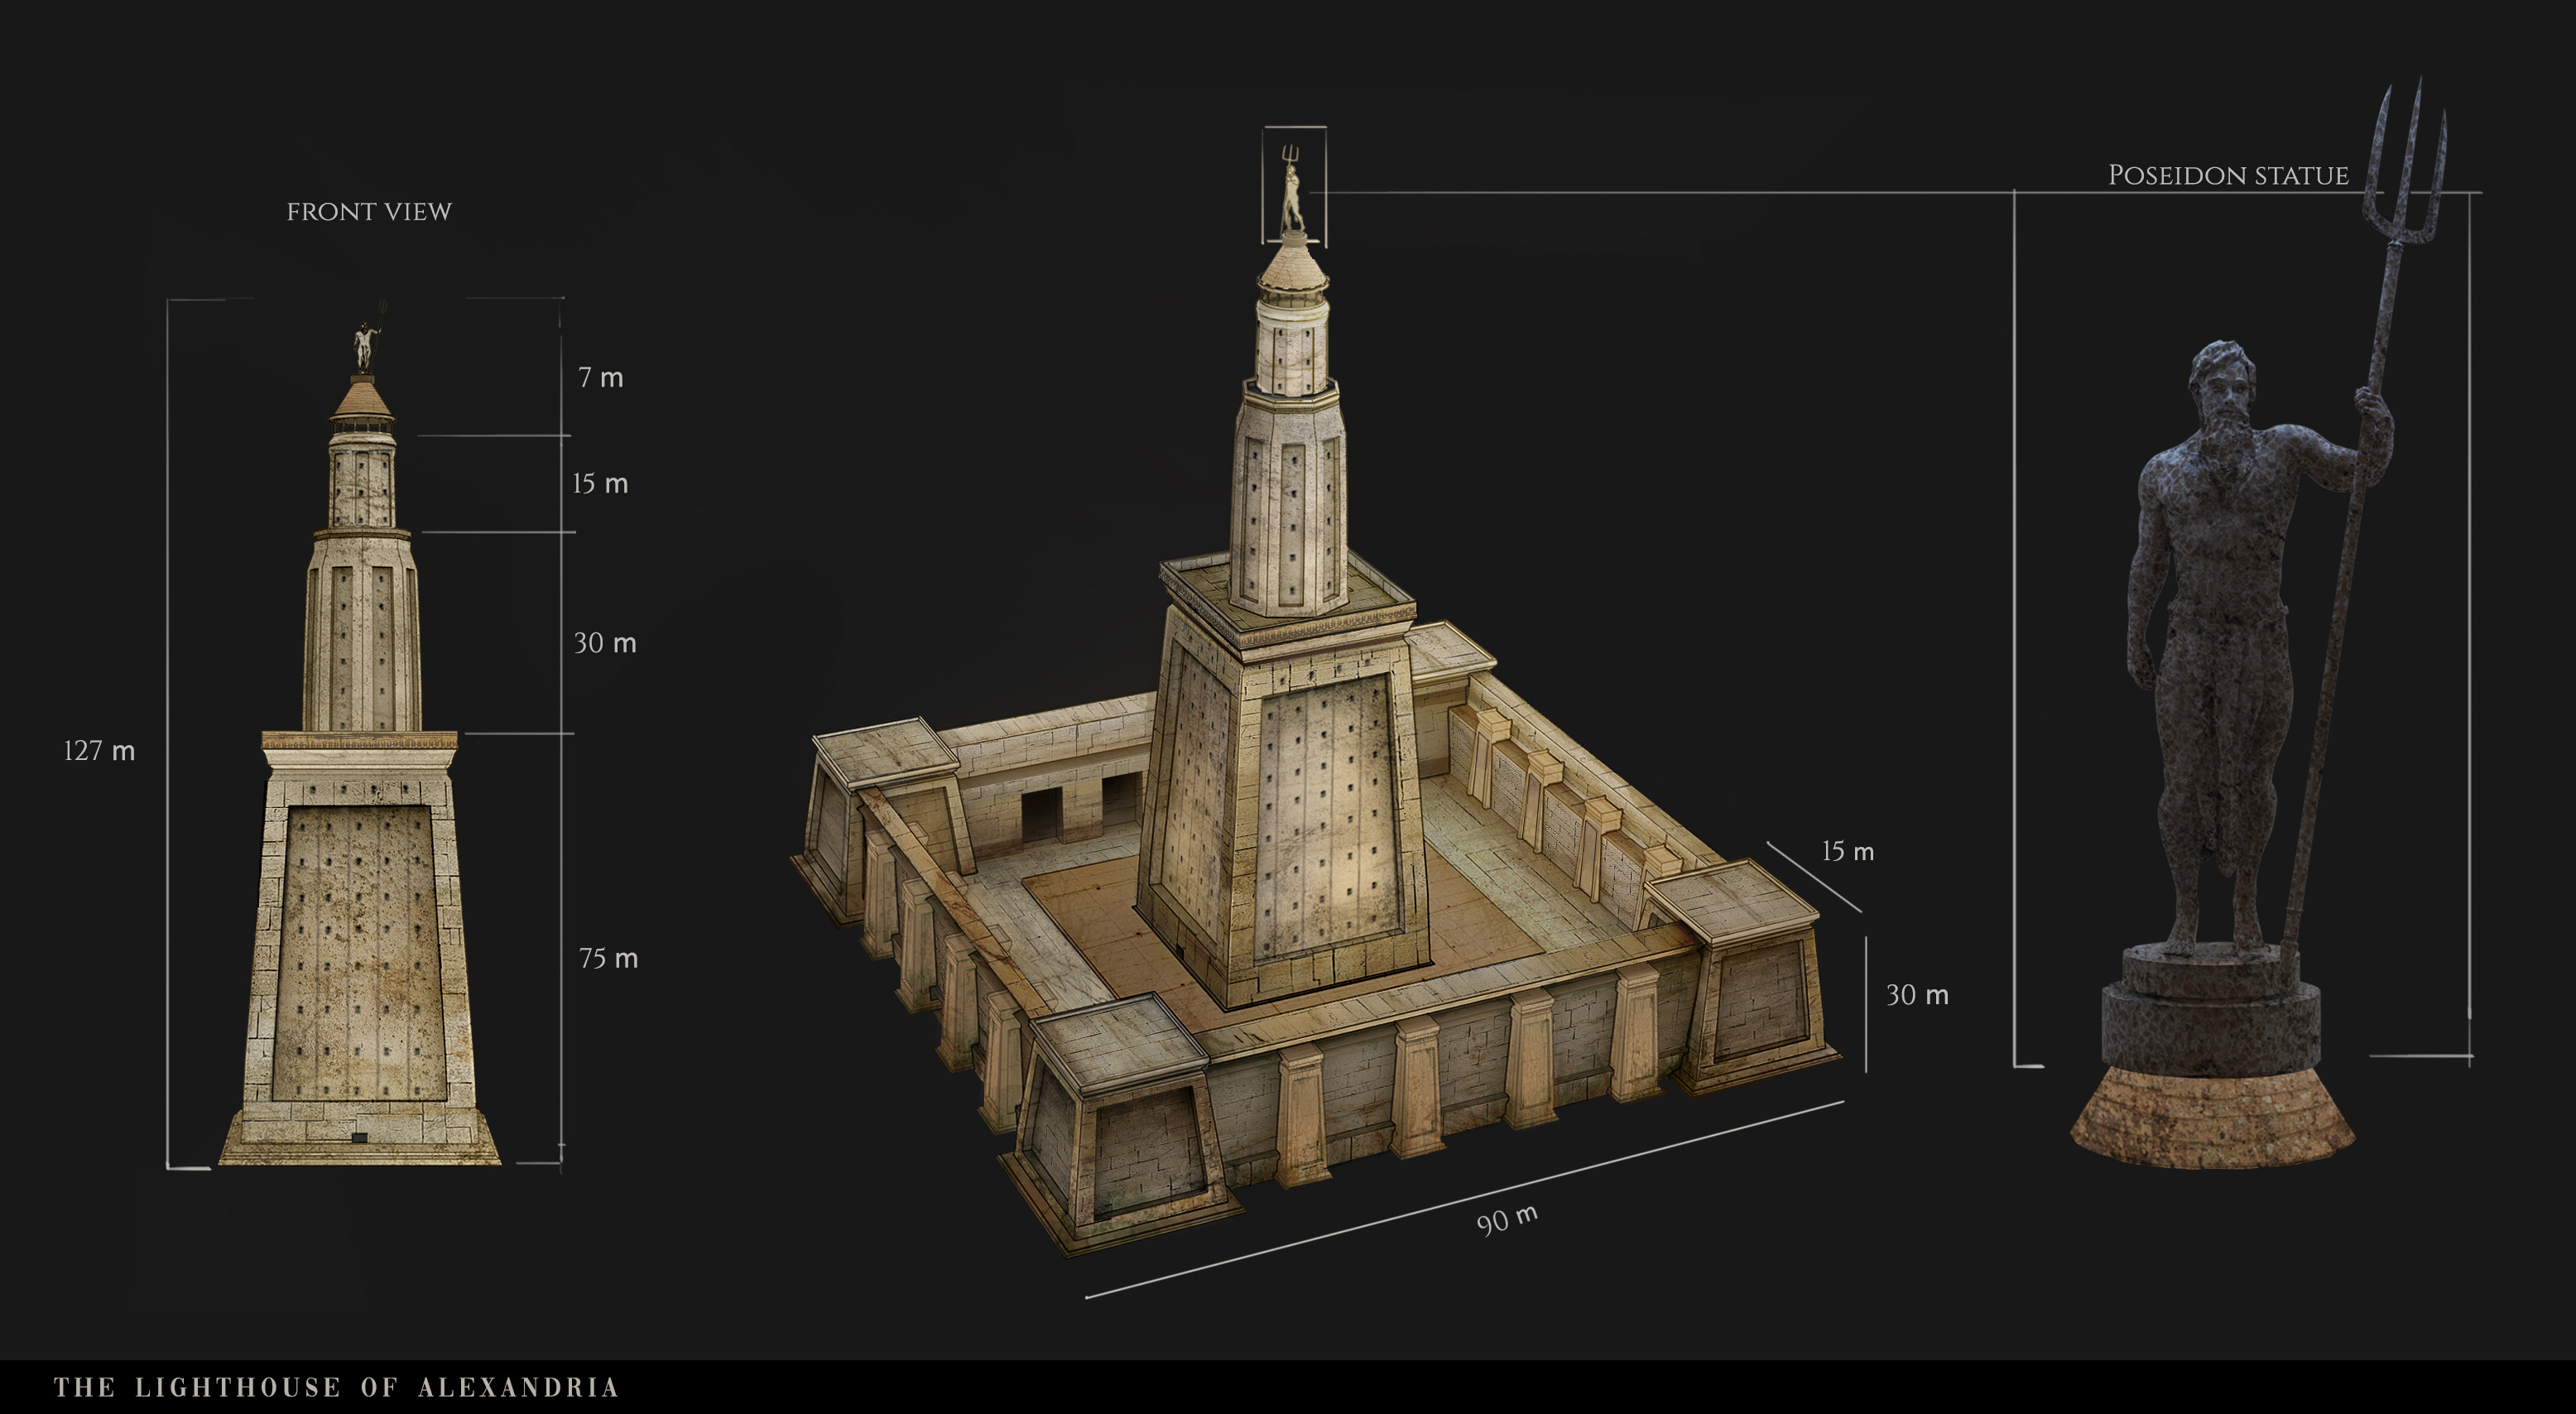 The Lighthouse of Alexandria architecture design